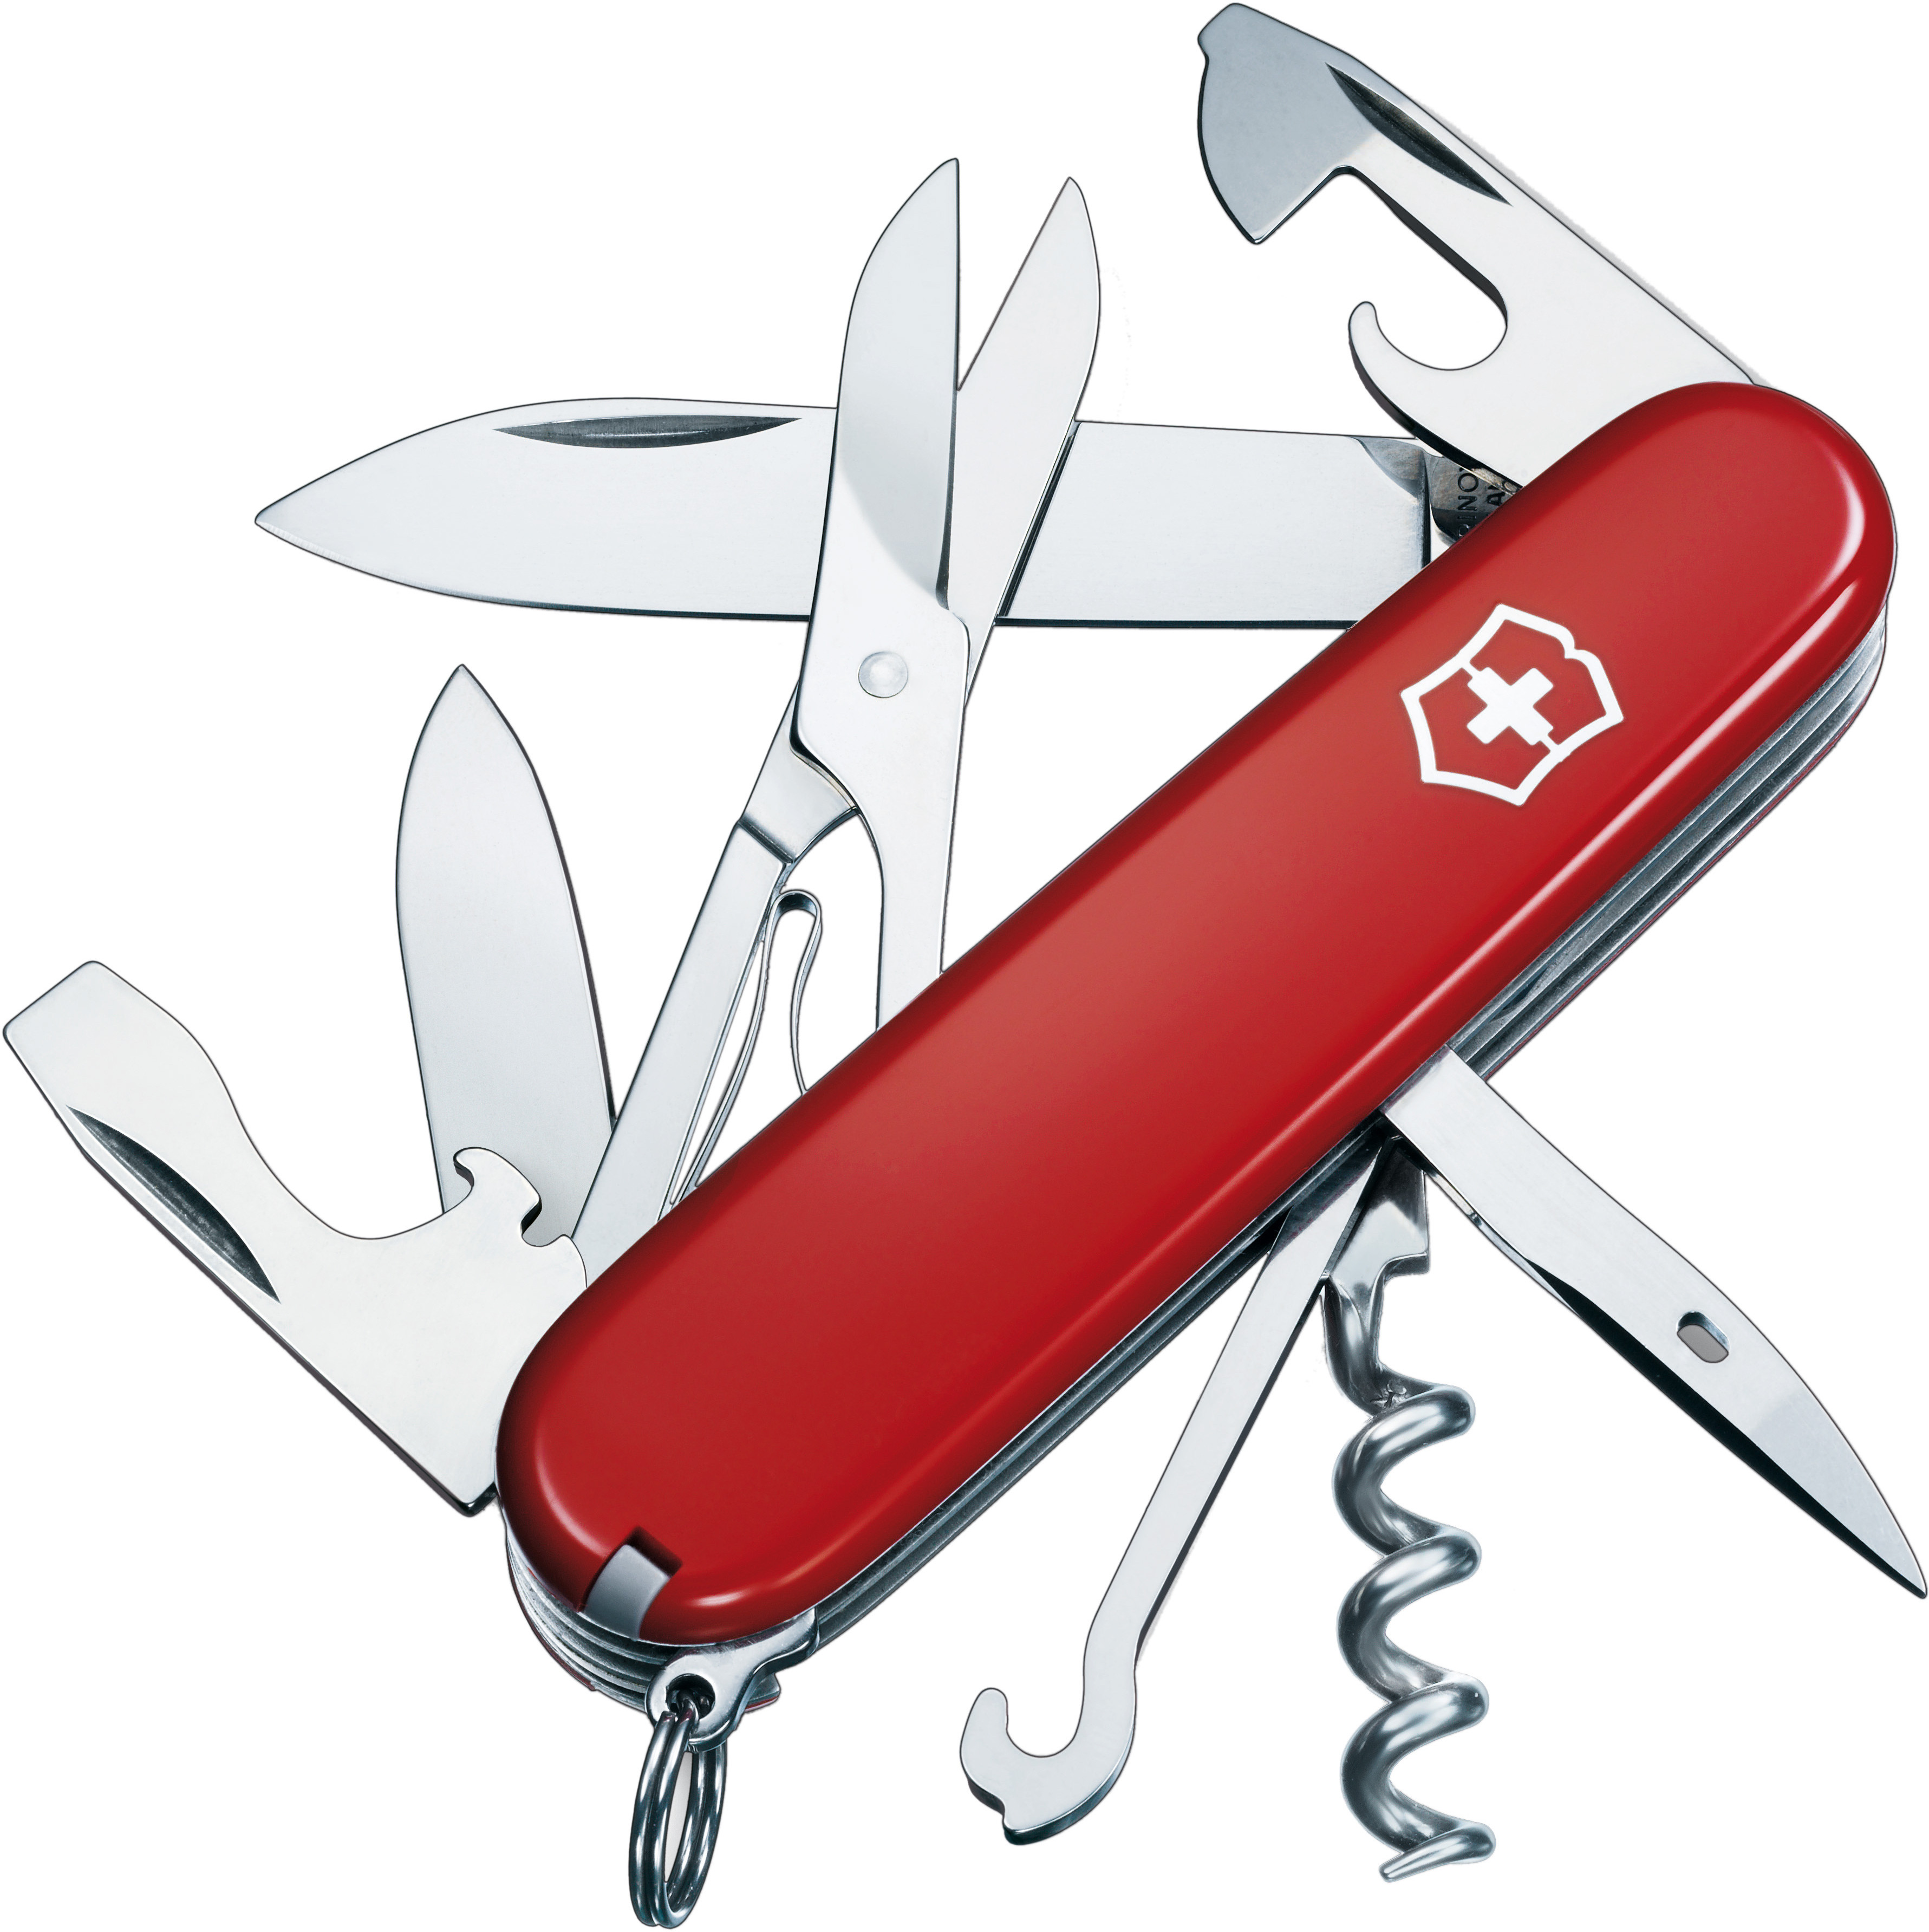 Victorinox Climber Swiss Knife Price In India Reviews